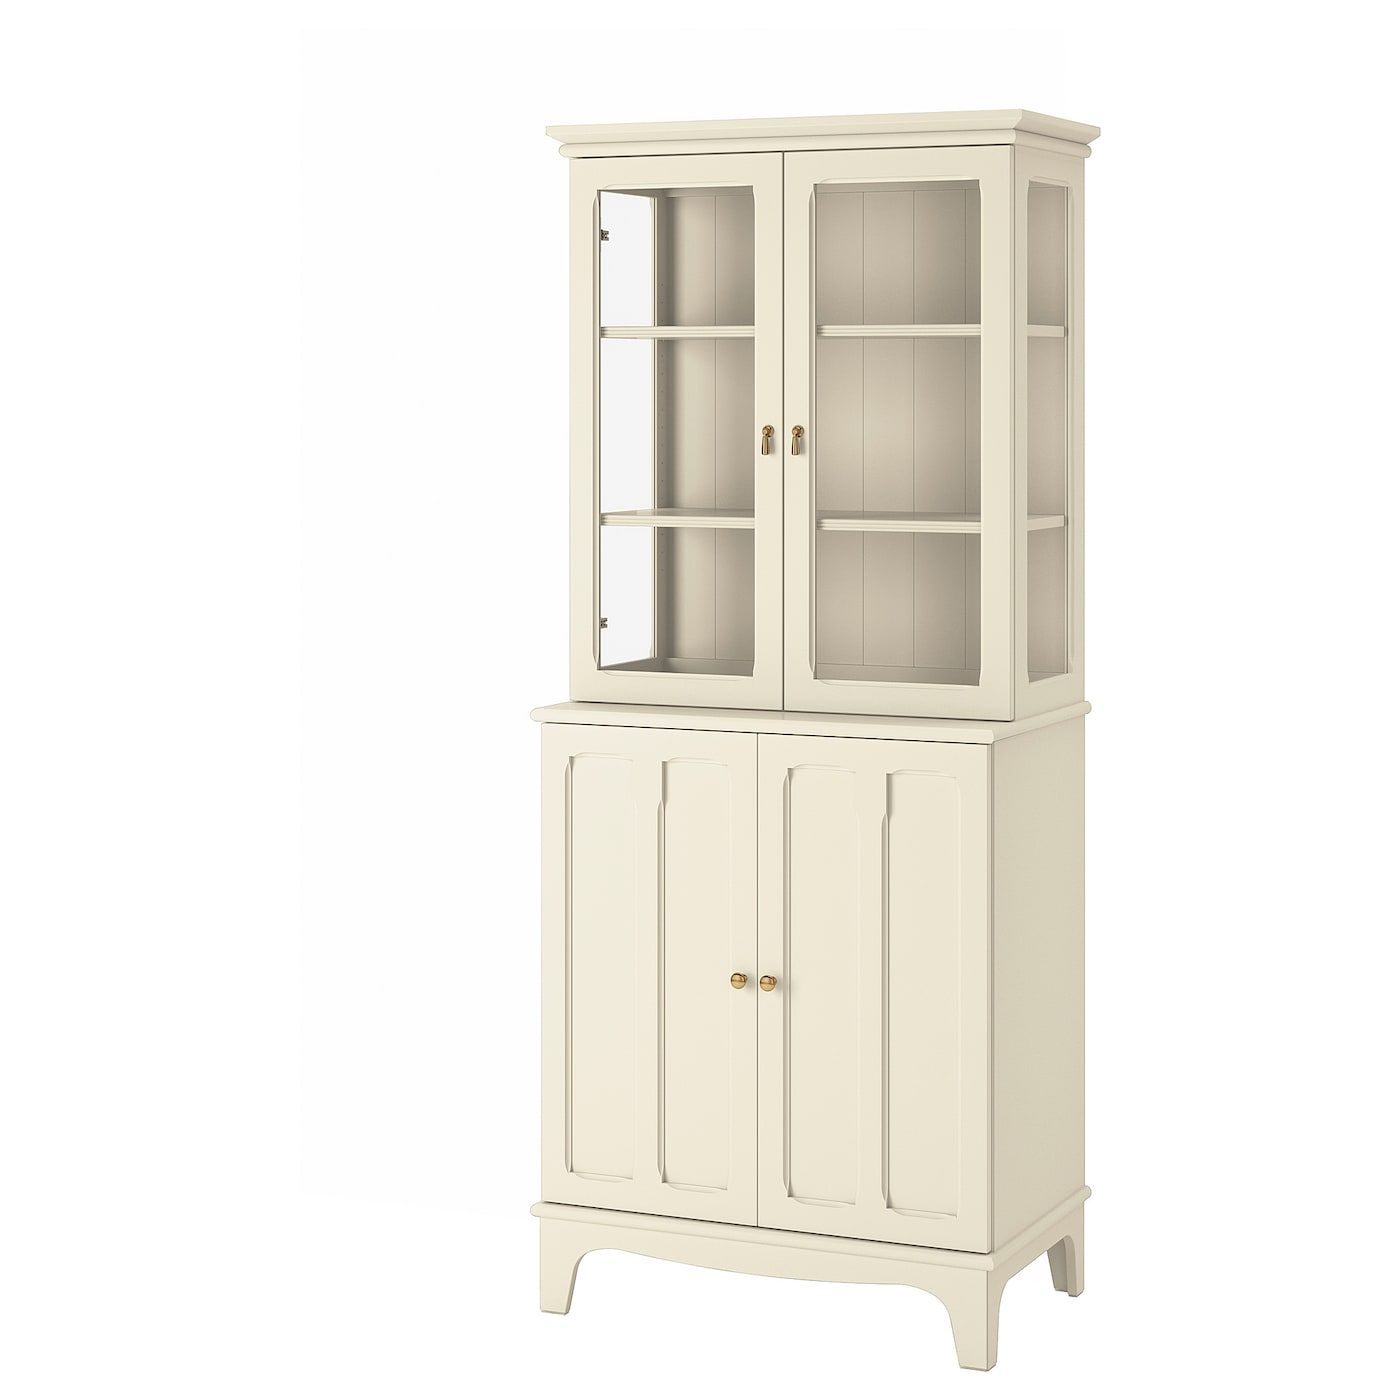 Lommarp Cabinet With Glass Doors Light Beige 86x199 Cm Ikea